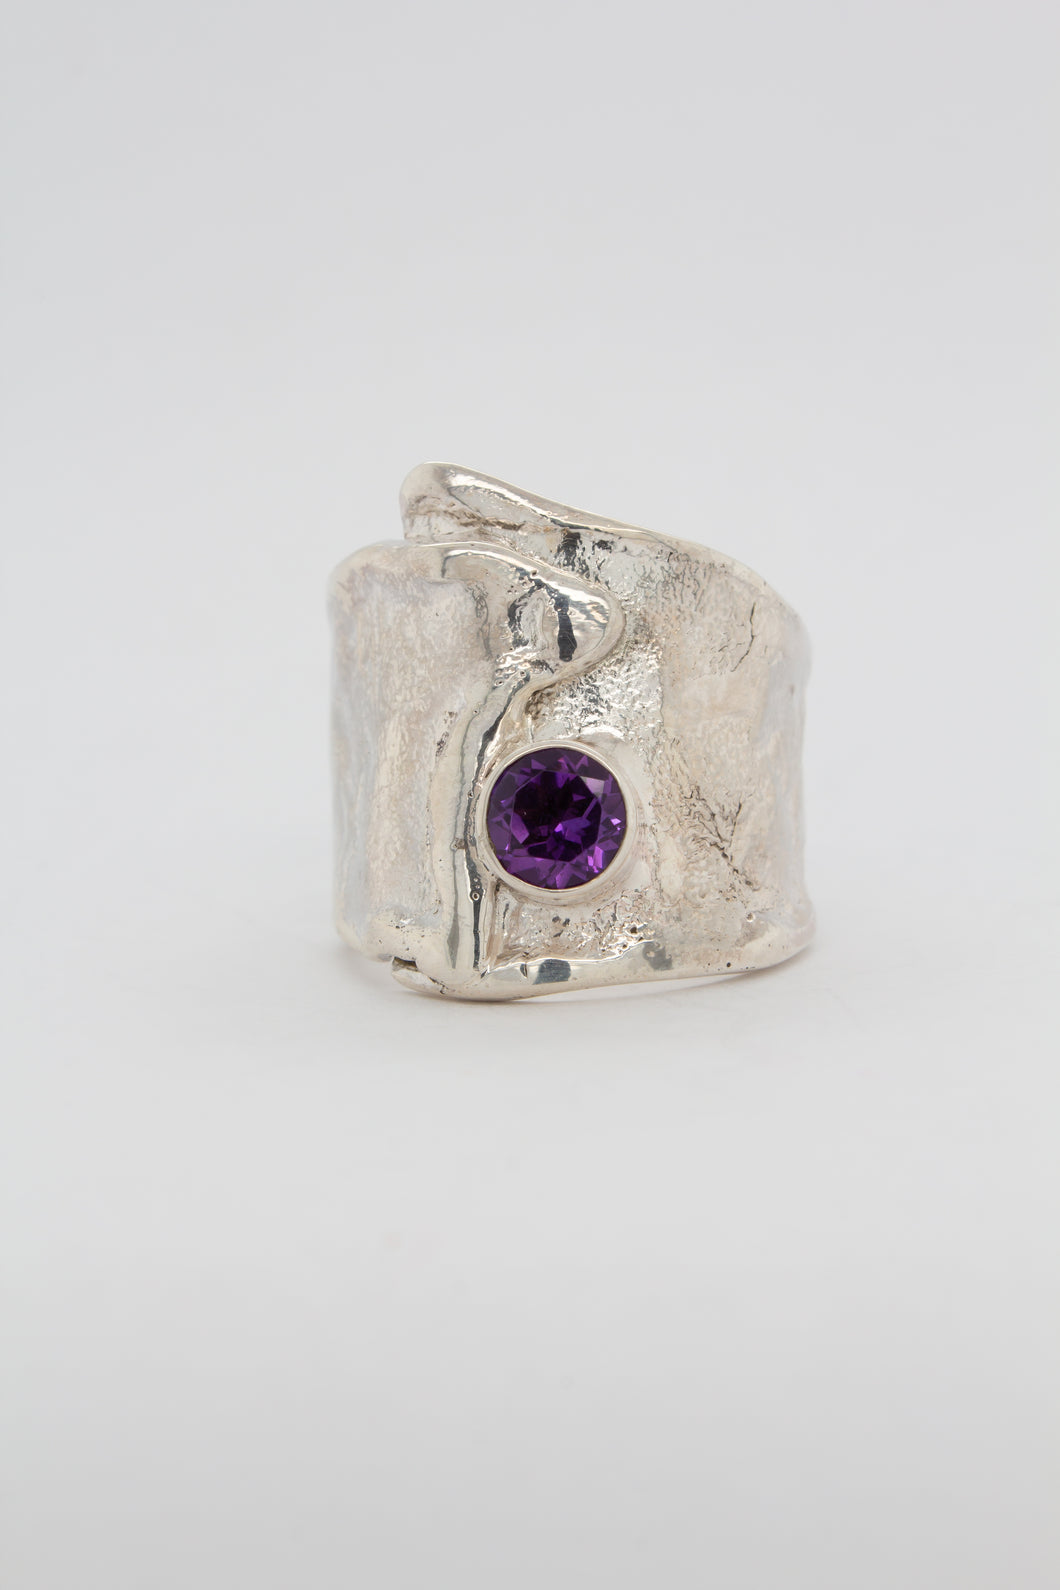 Reticulated Amethyst Ring